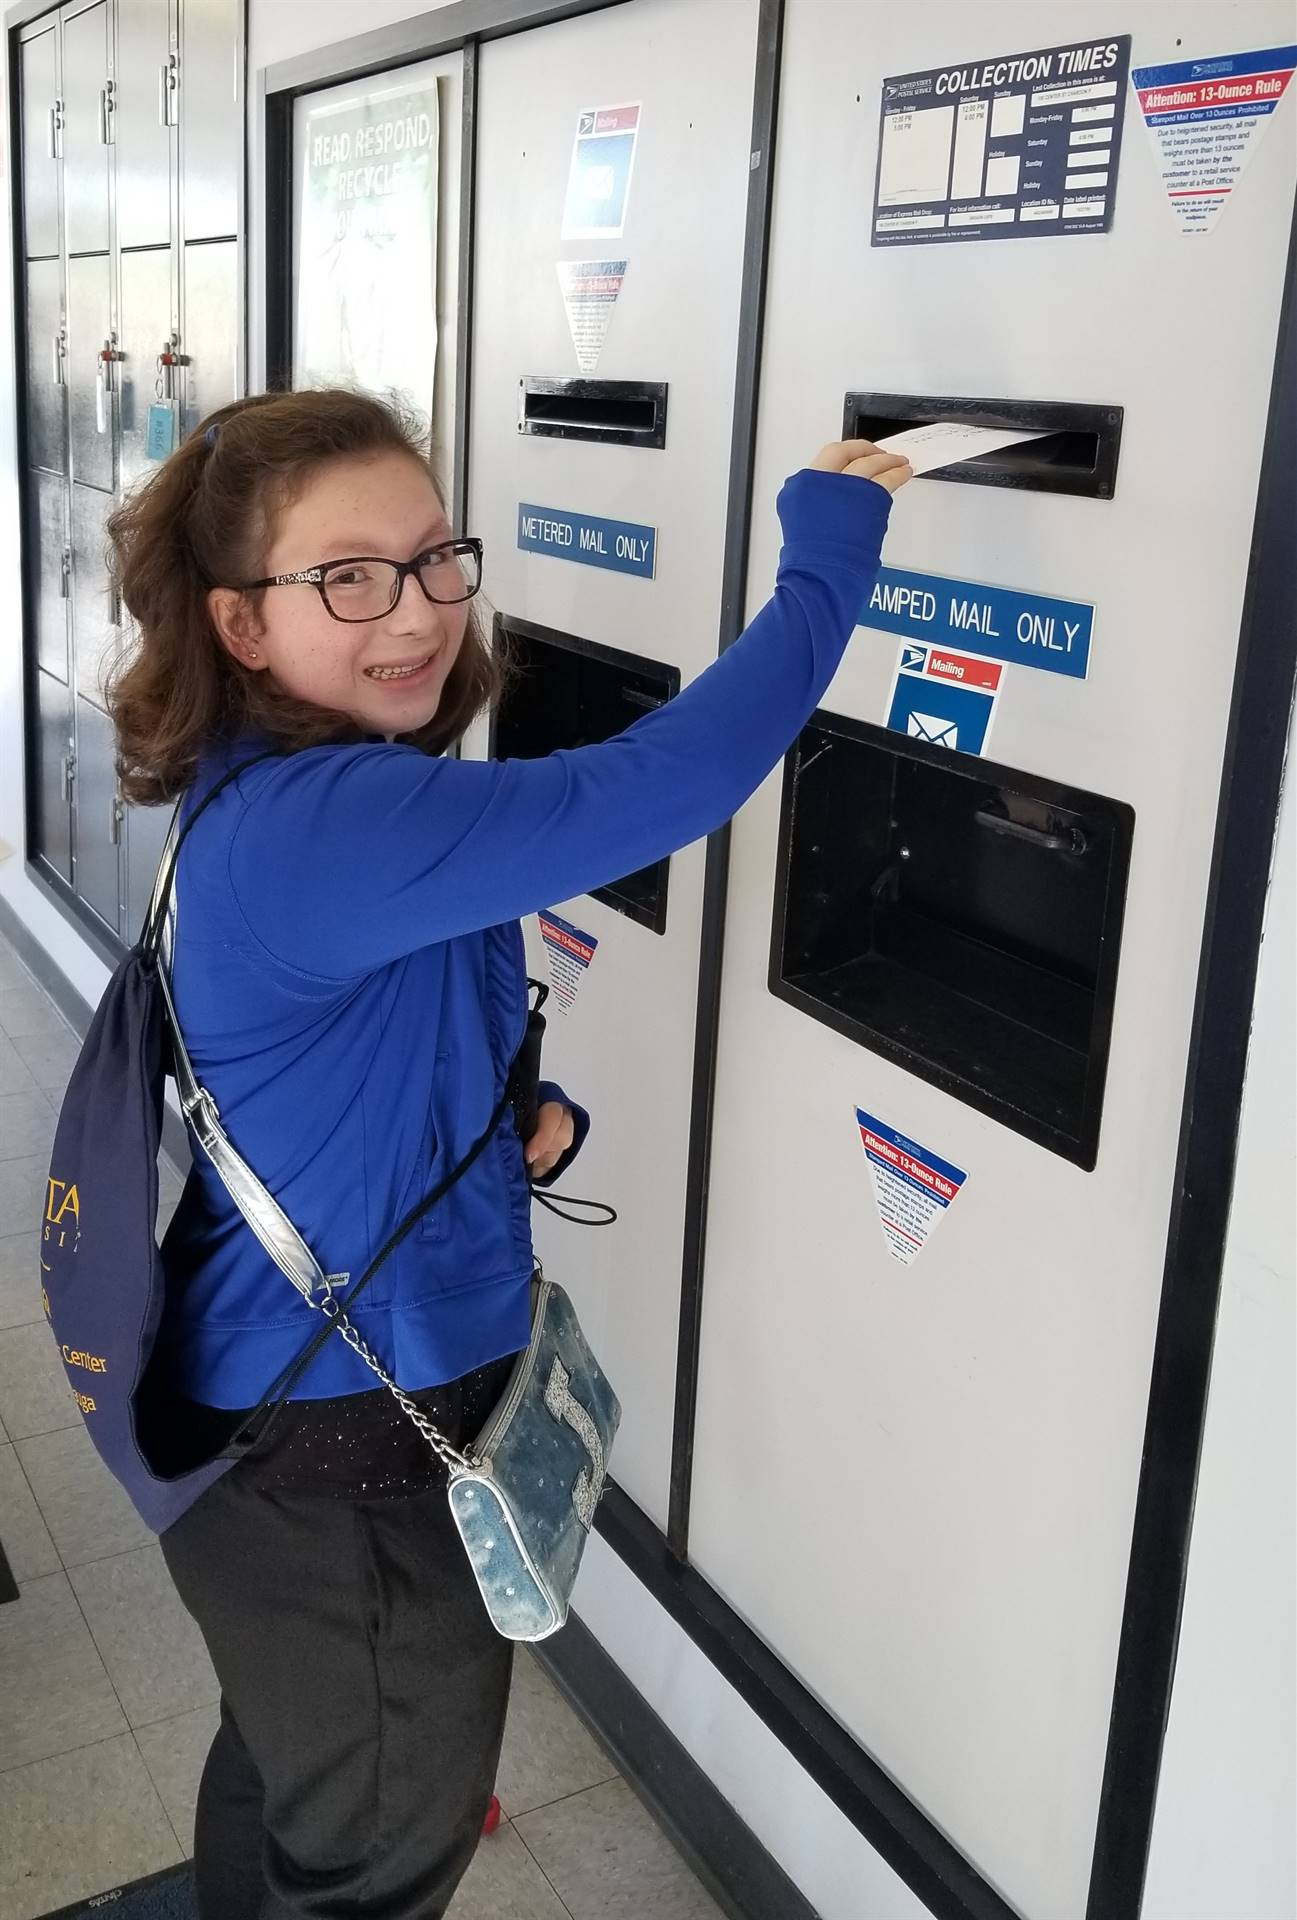 CHS student engaged in field trip to the post office.